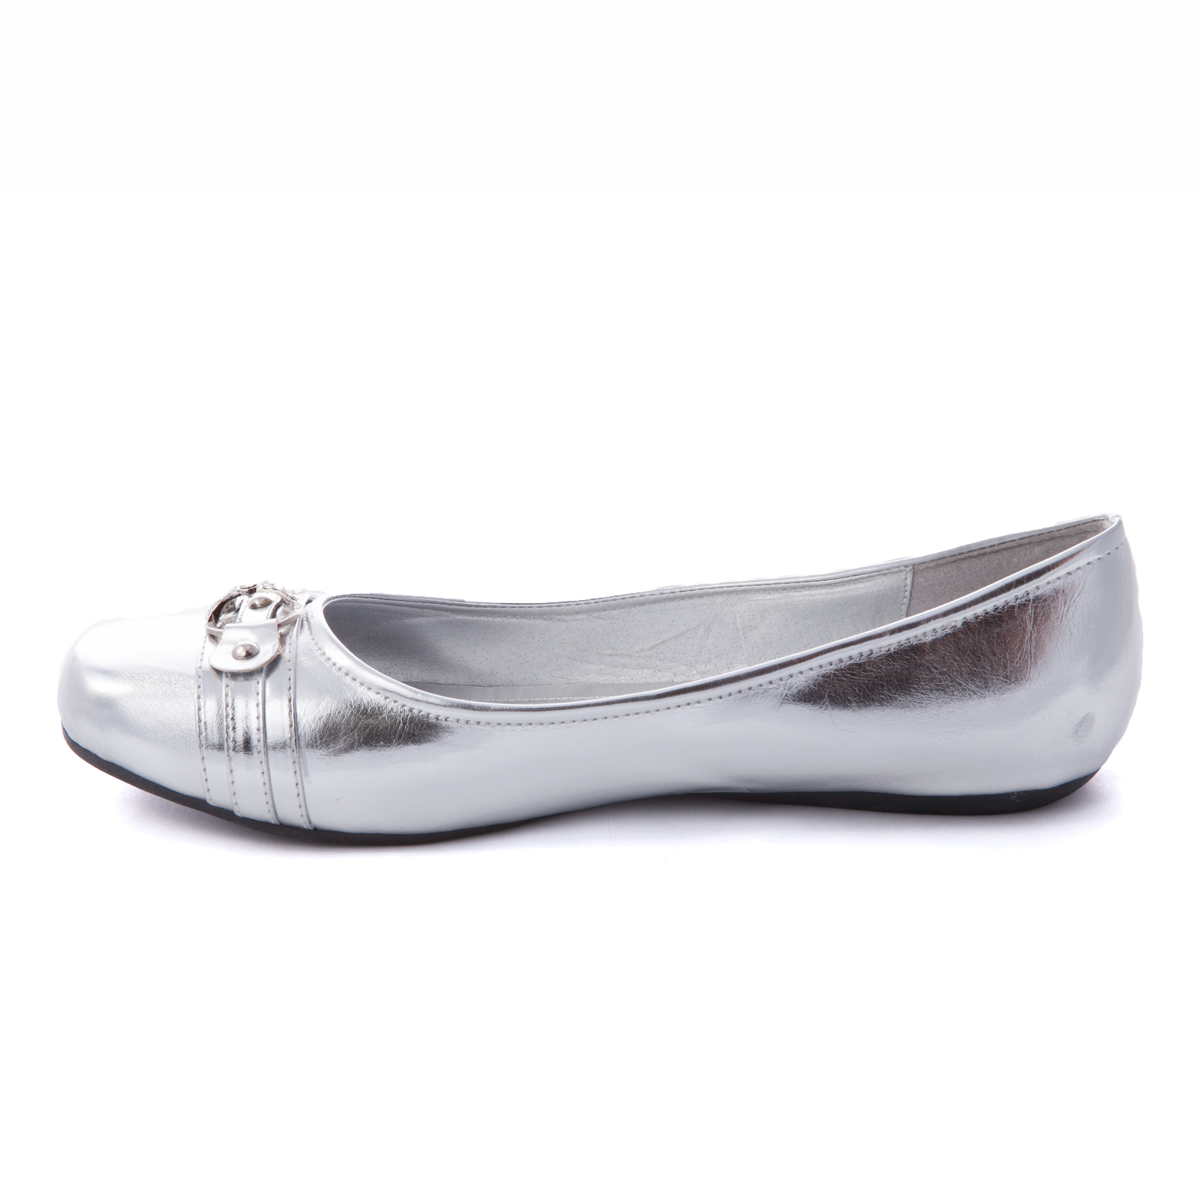 Free shipping BOTH ways on womens silver ballet flats, from our vast selection of styles. Fast delivery, and 24/7/ real-person service with a smile. Click or call